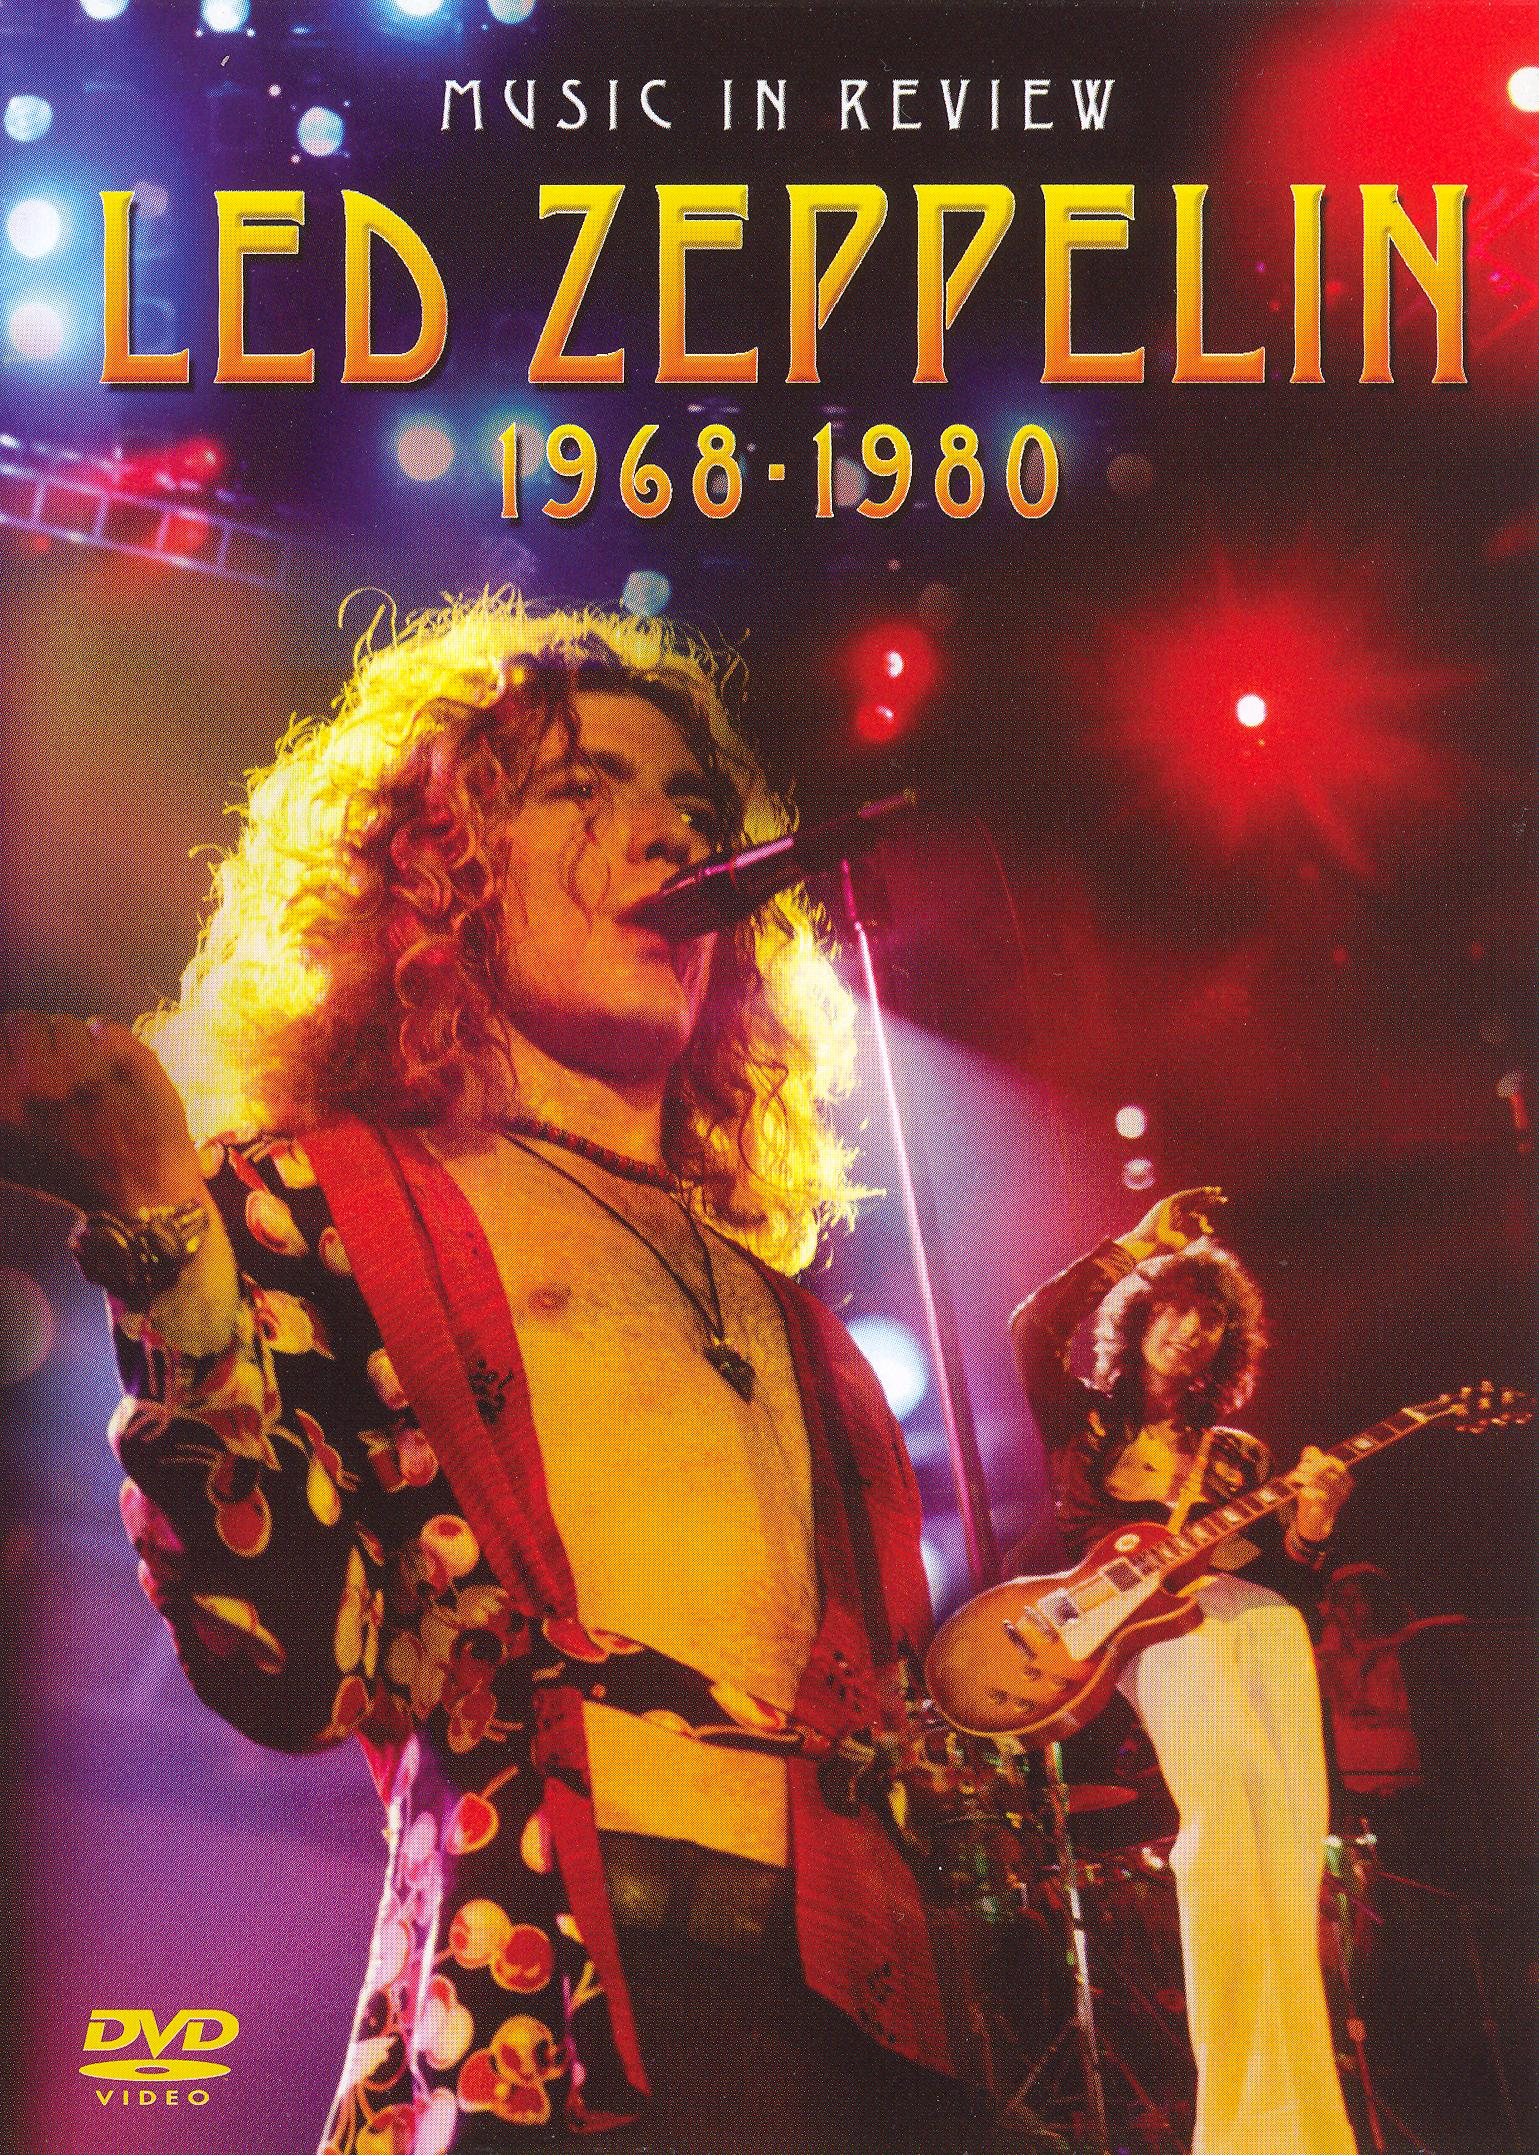 Led Zeppelin: Music in Review